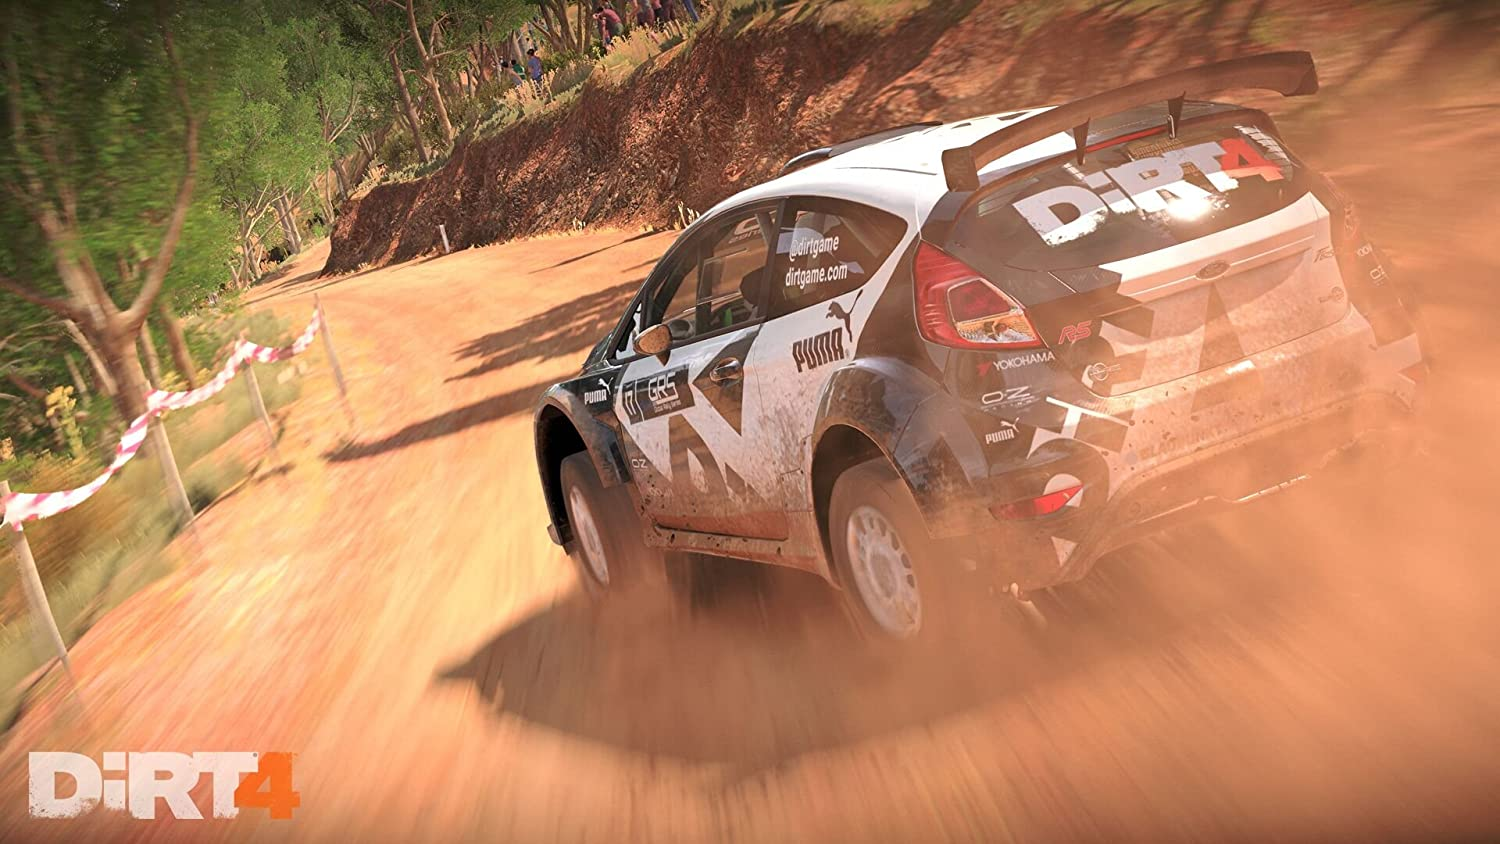 Dirt 4 - Day One Edition: Amazon.es: Videojuegos